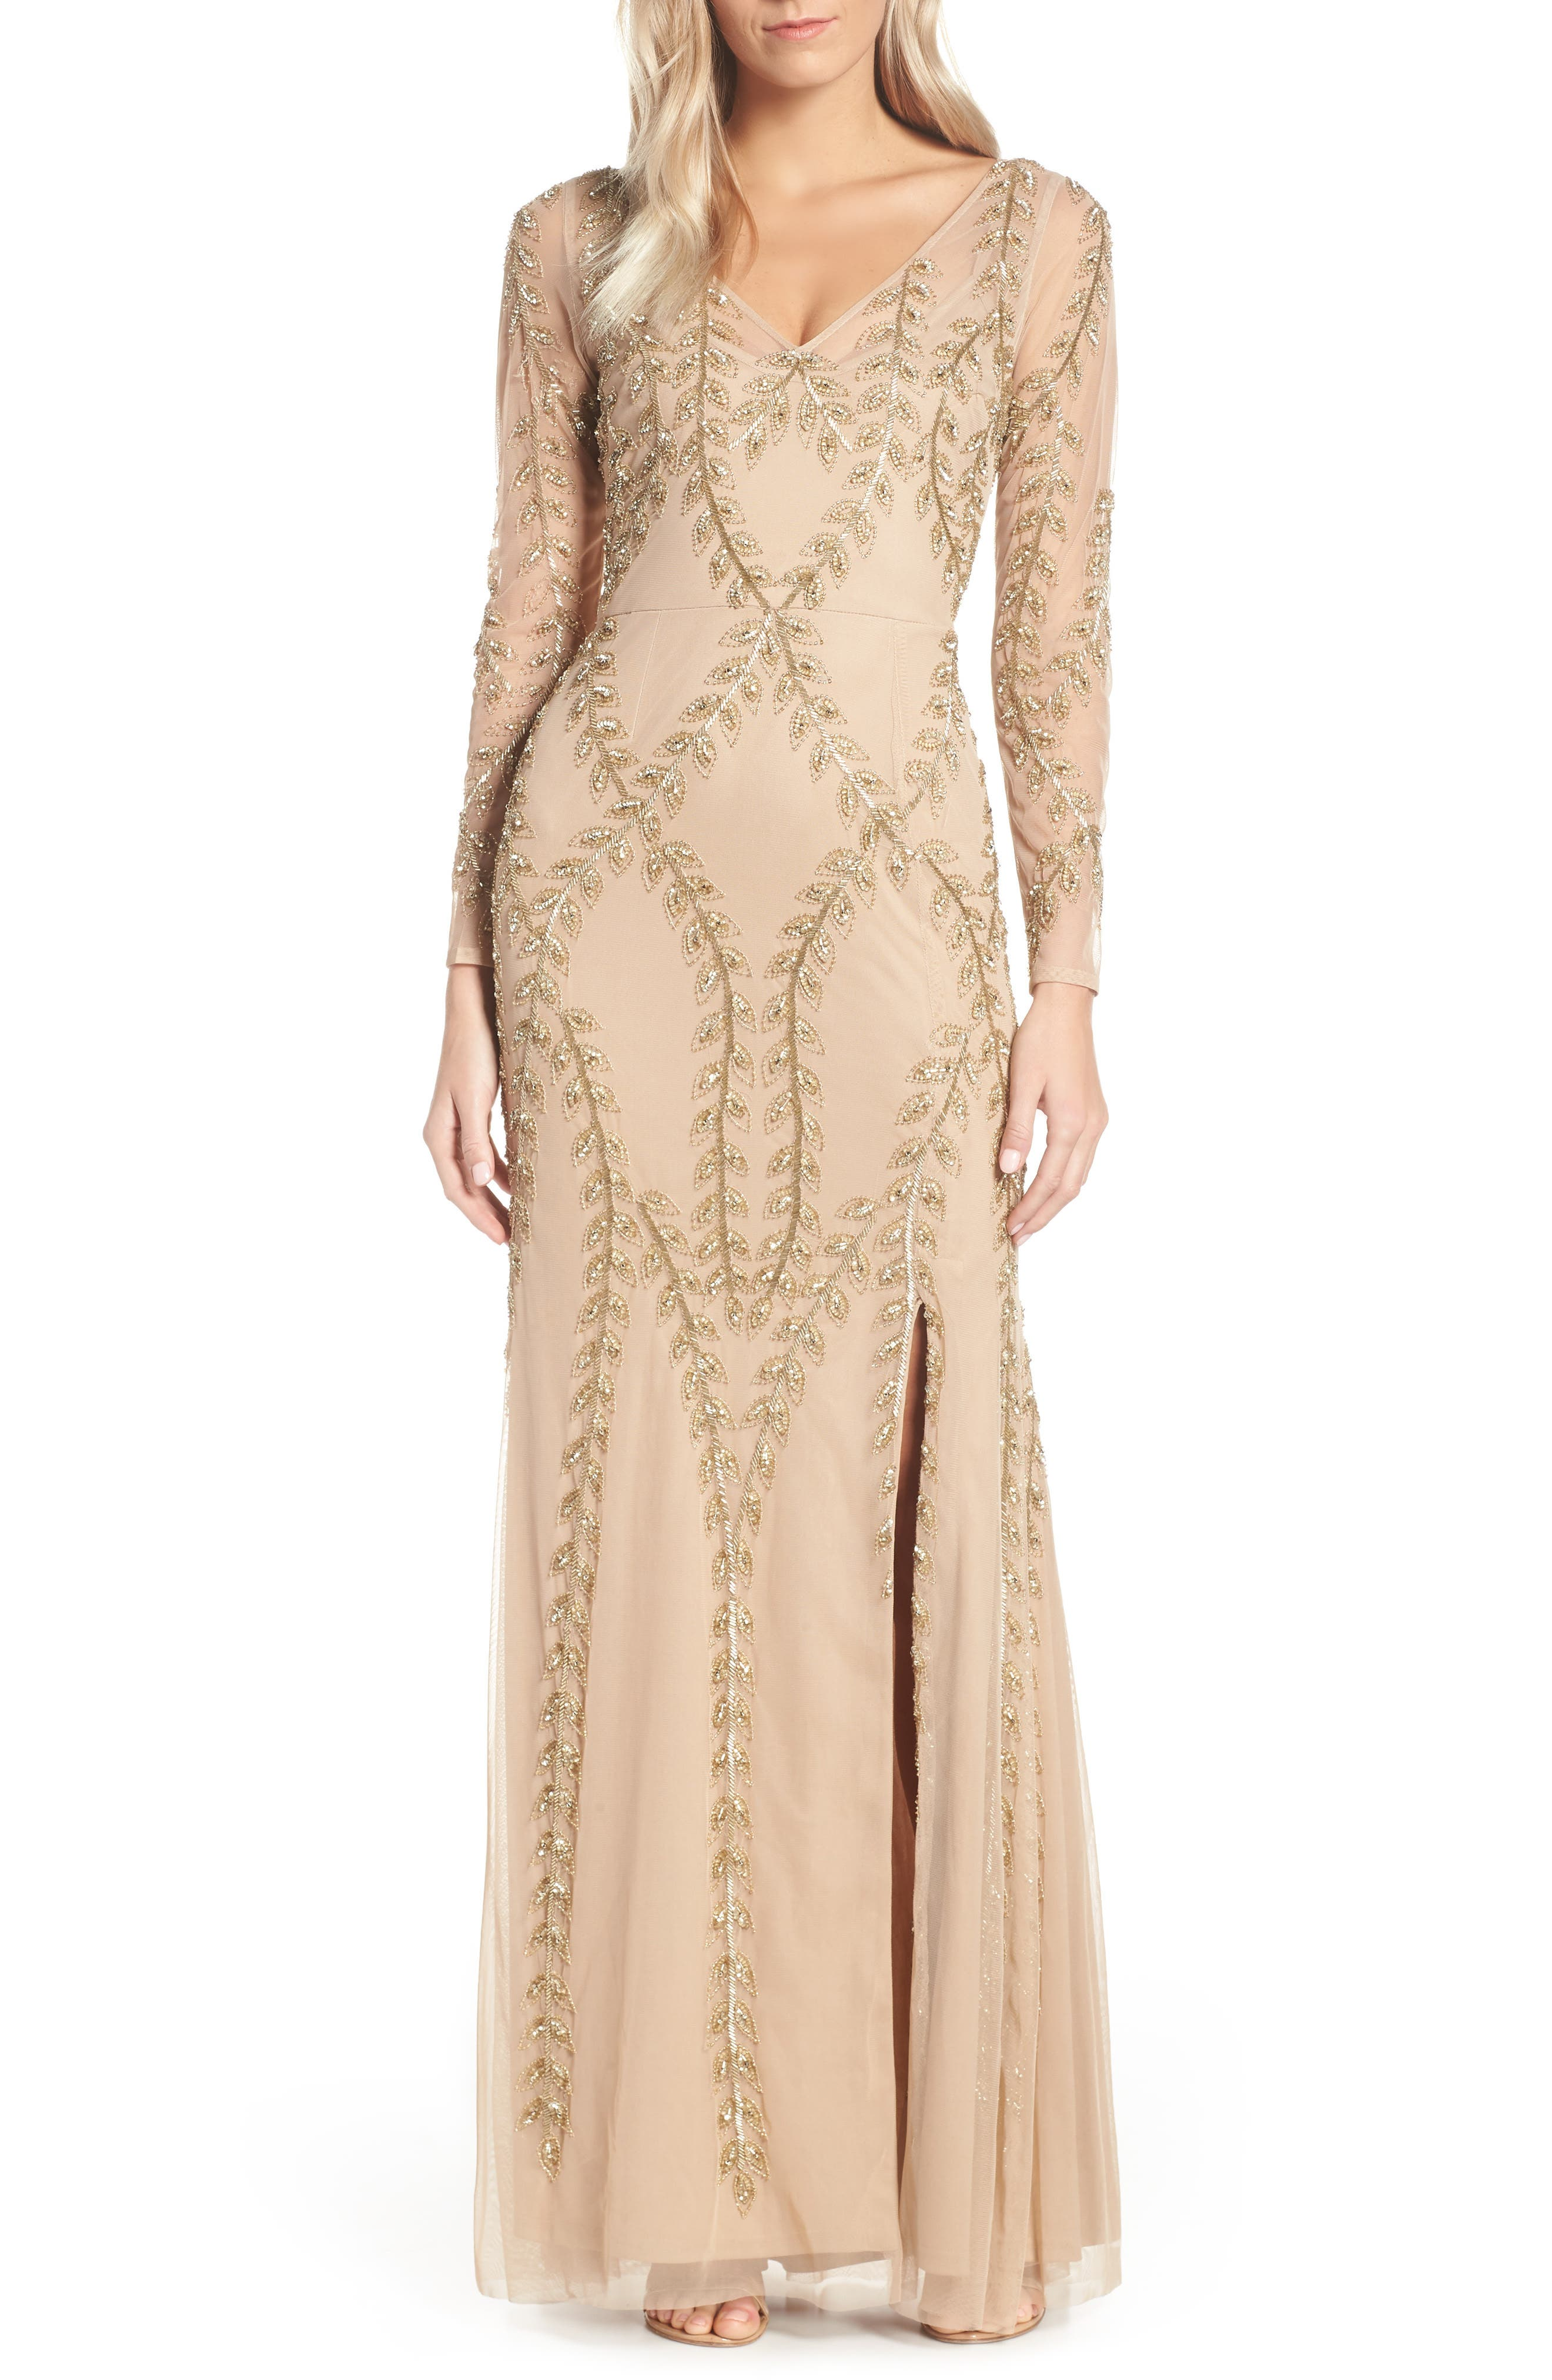 ADRIANNA PAPELL,                             Fern Beaded Gown,                             Main thumbnail 1, color,                             CHAMPAGNE/ GOLD